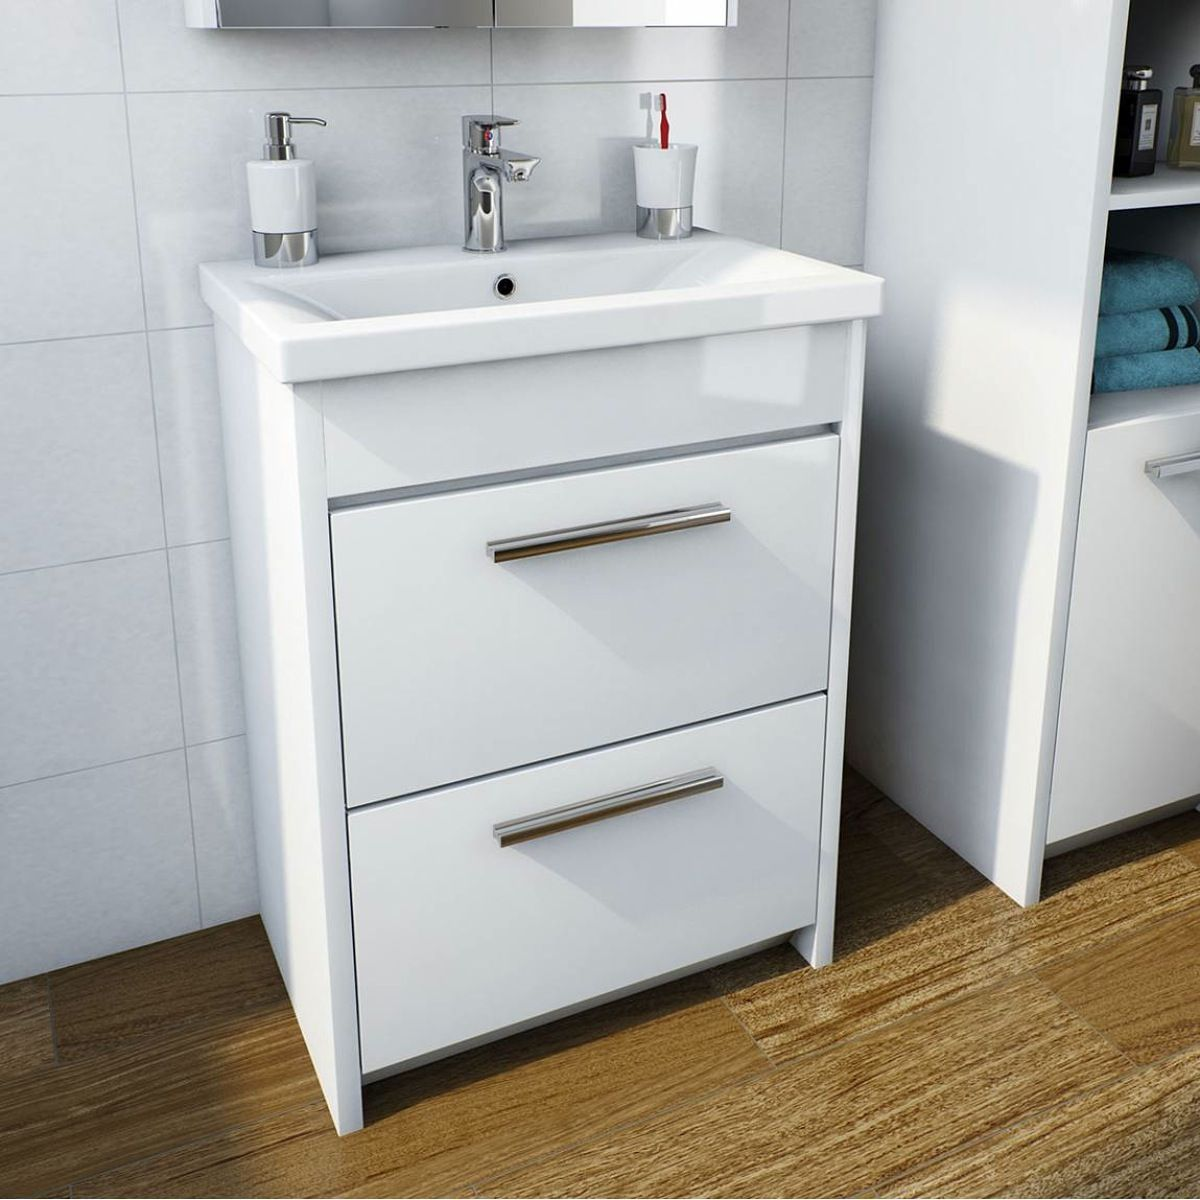 Clarity white vanity drawer unit with basin 500mm | Vanity units and ...